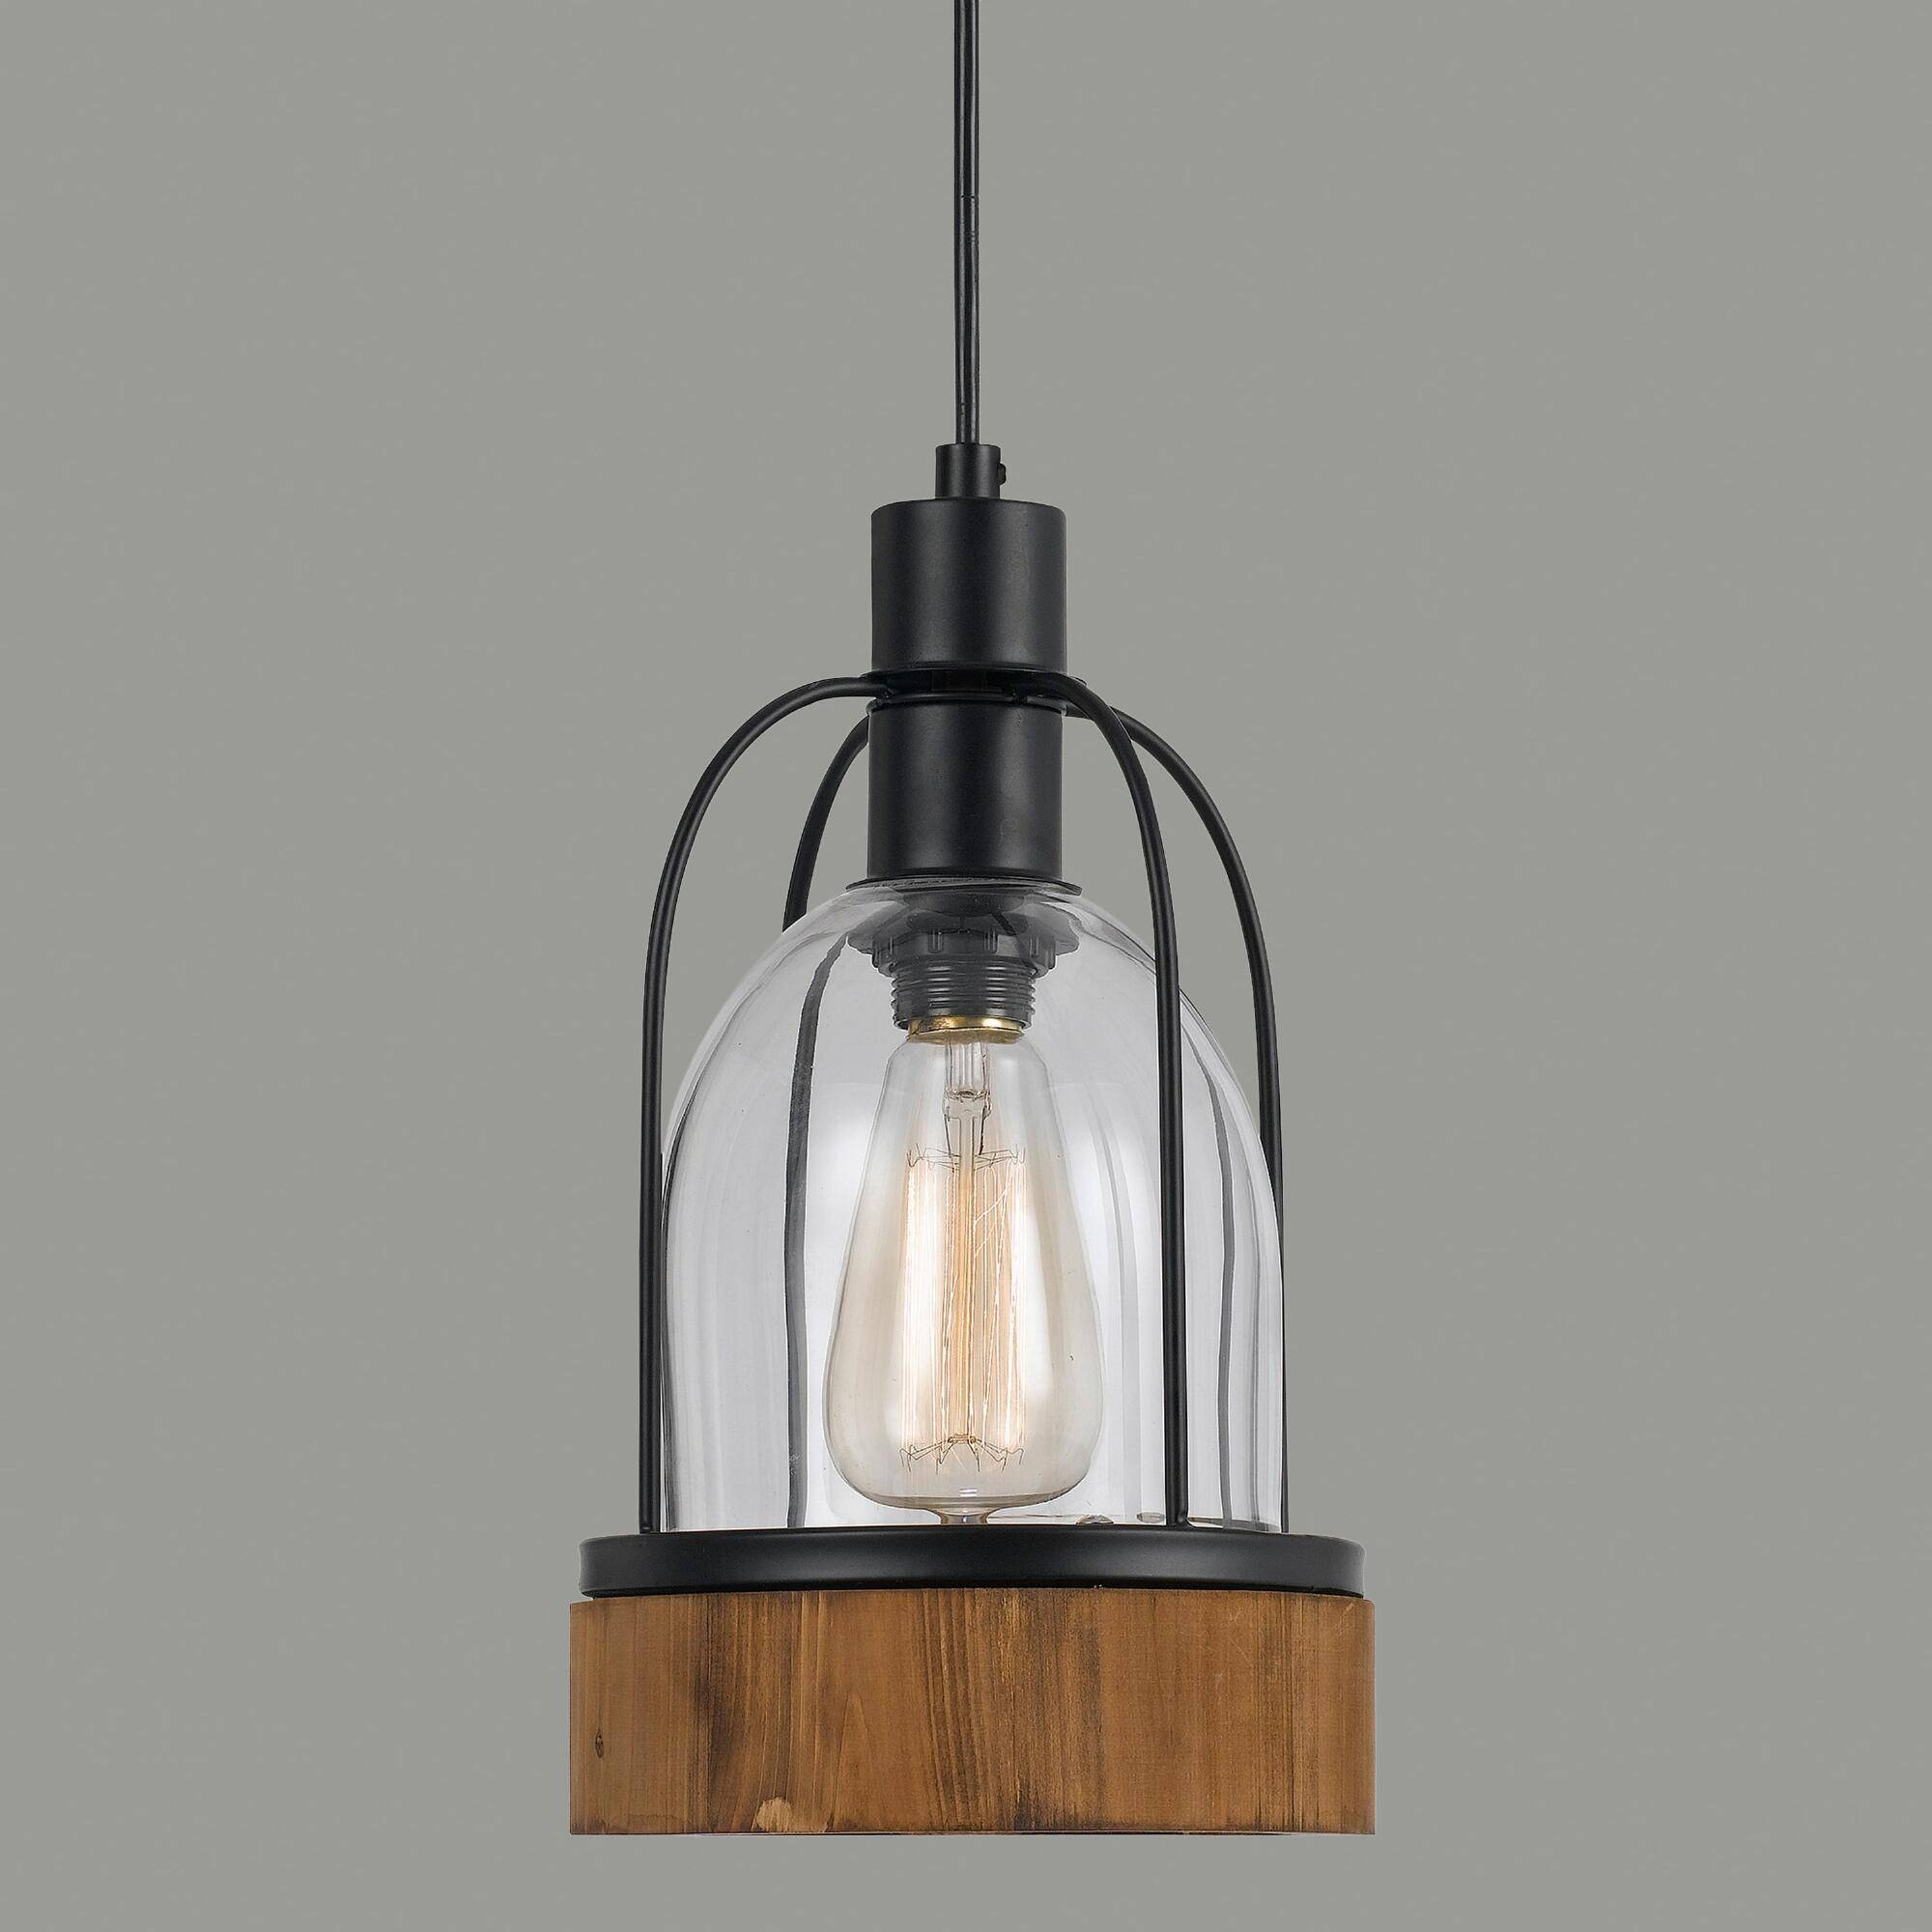 Lighting Design Ideas: Nice Fixtures Industrial Style Pendant pertaining to Industrial Looking Pendant Lights Fixtures (Image 10 of 15)